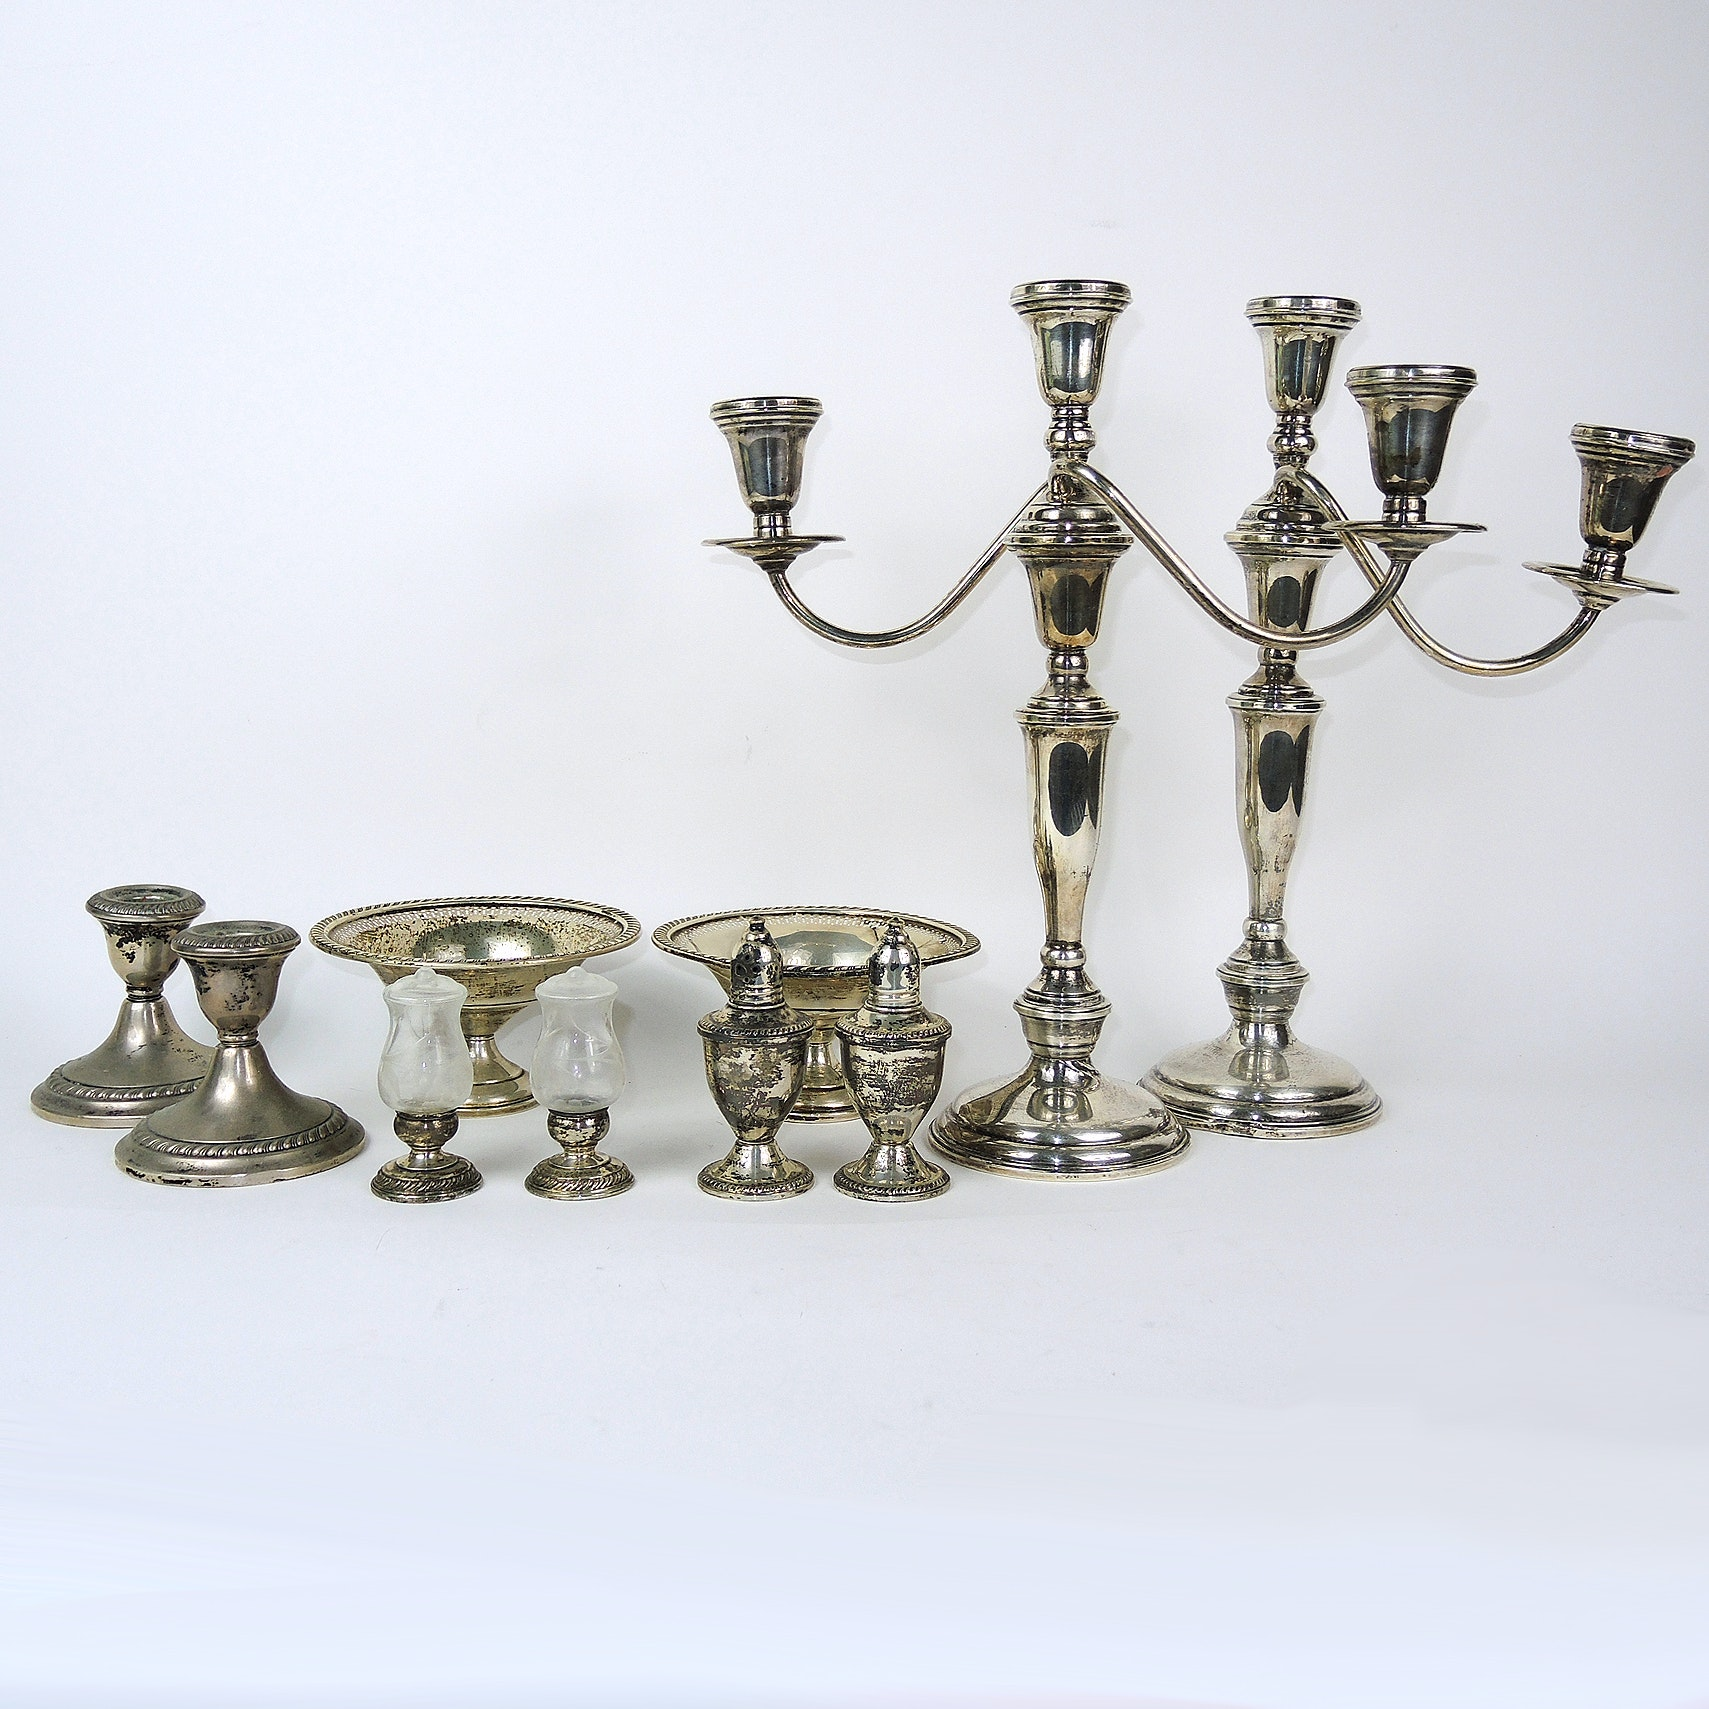 Sterling Silver Weighted Tableware and Candleholders